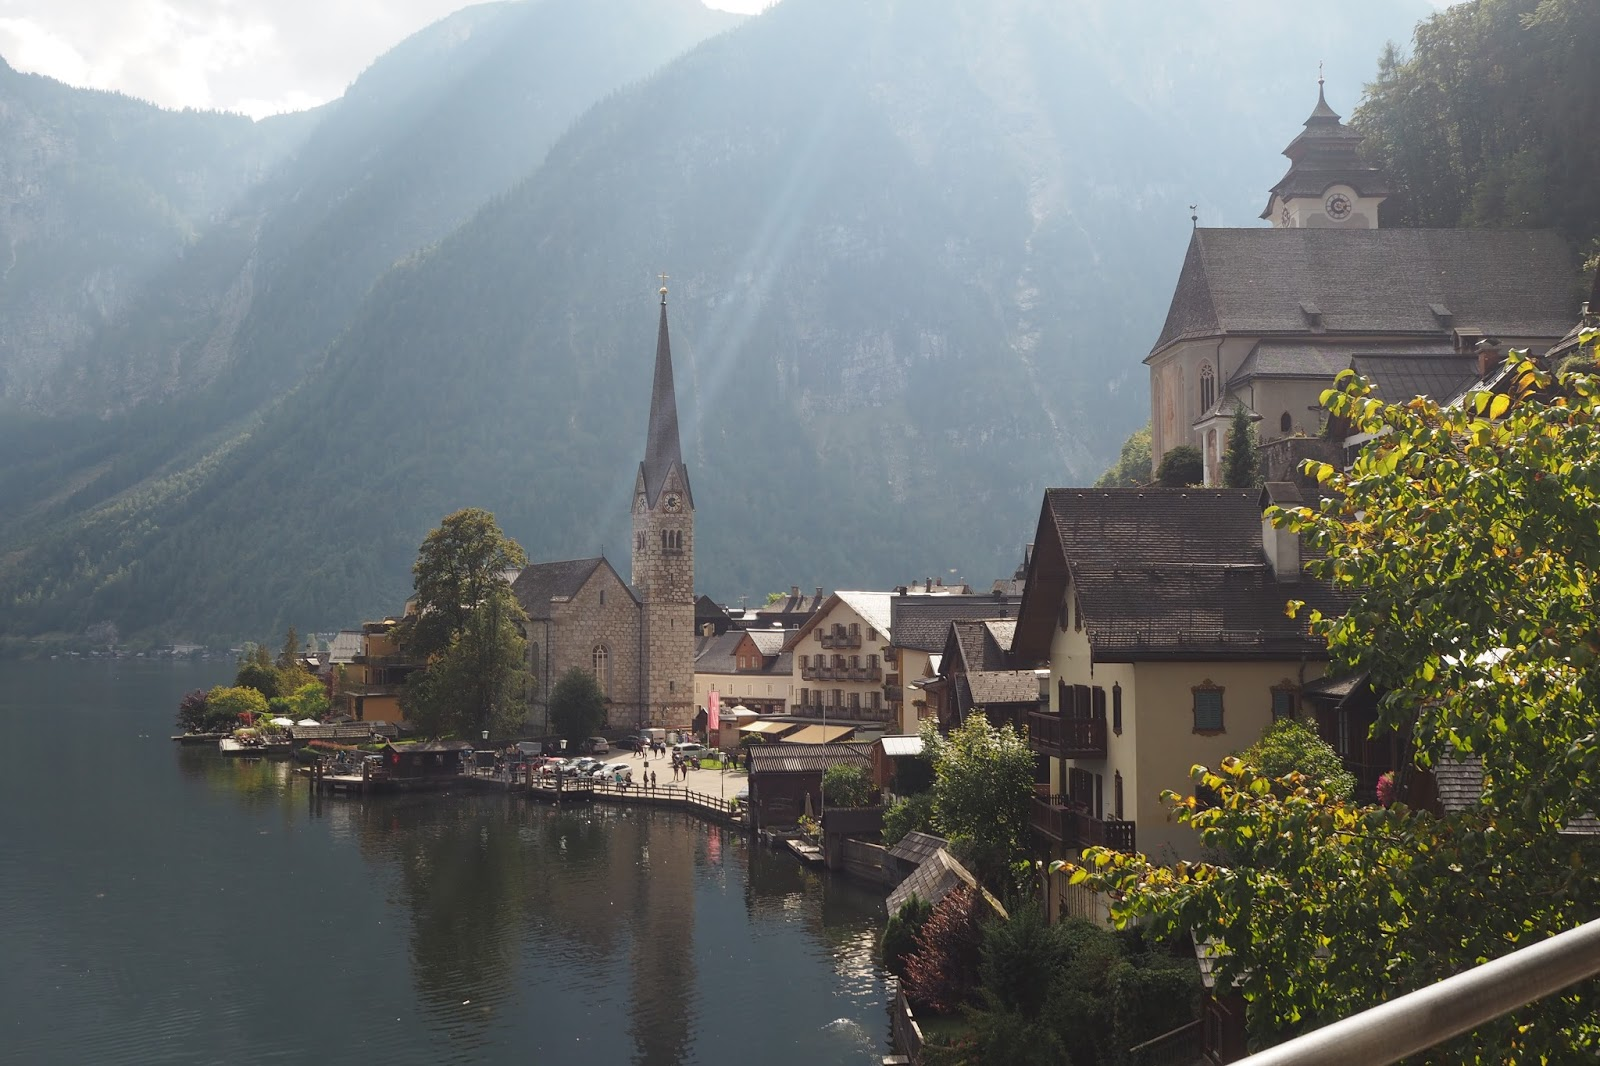 24 hours in Hallstatt